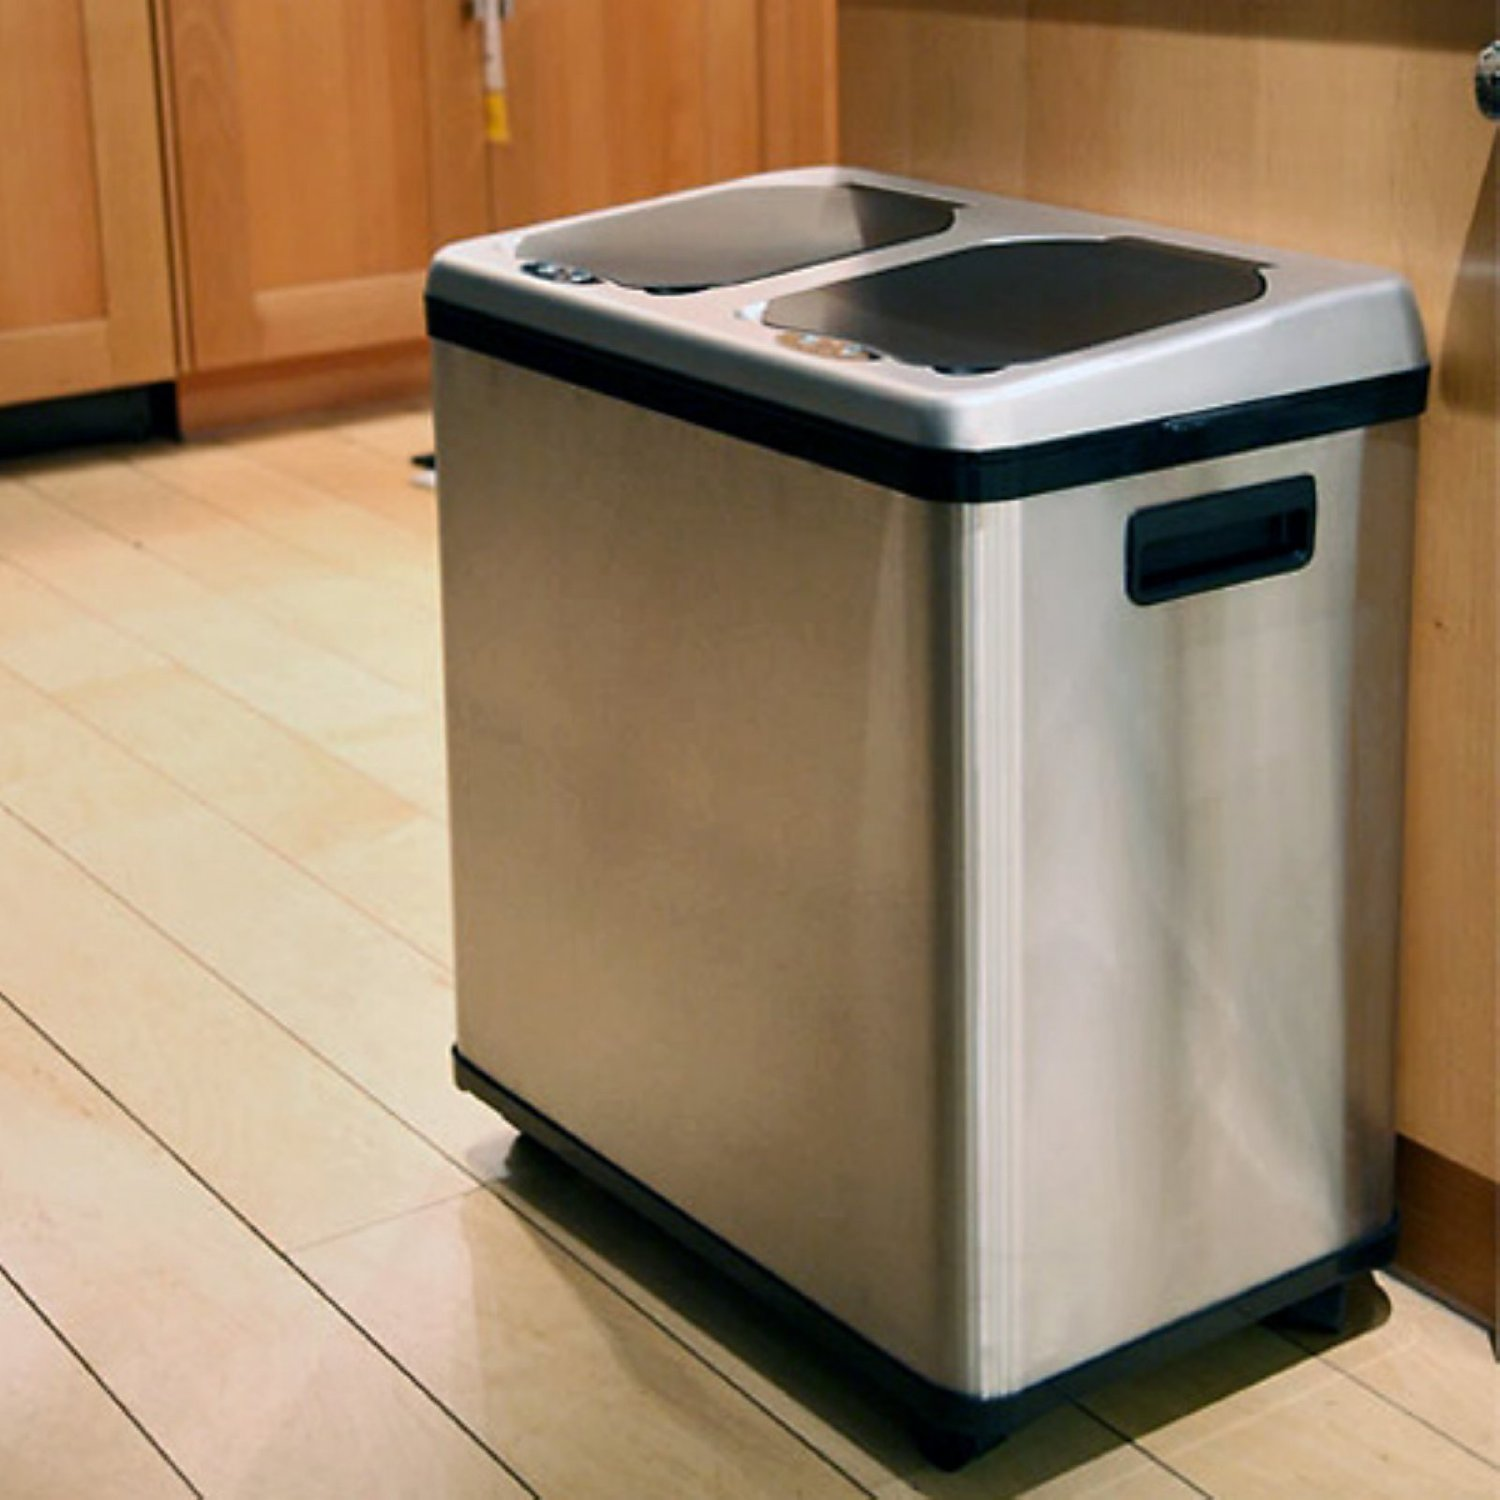 Trash Cans For Kitchen Stylish Recycling Bins You Won 39t Want Want To Hide